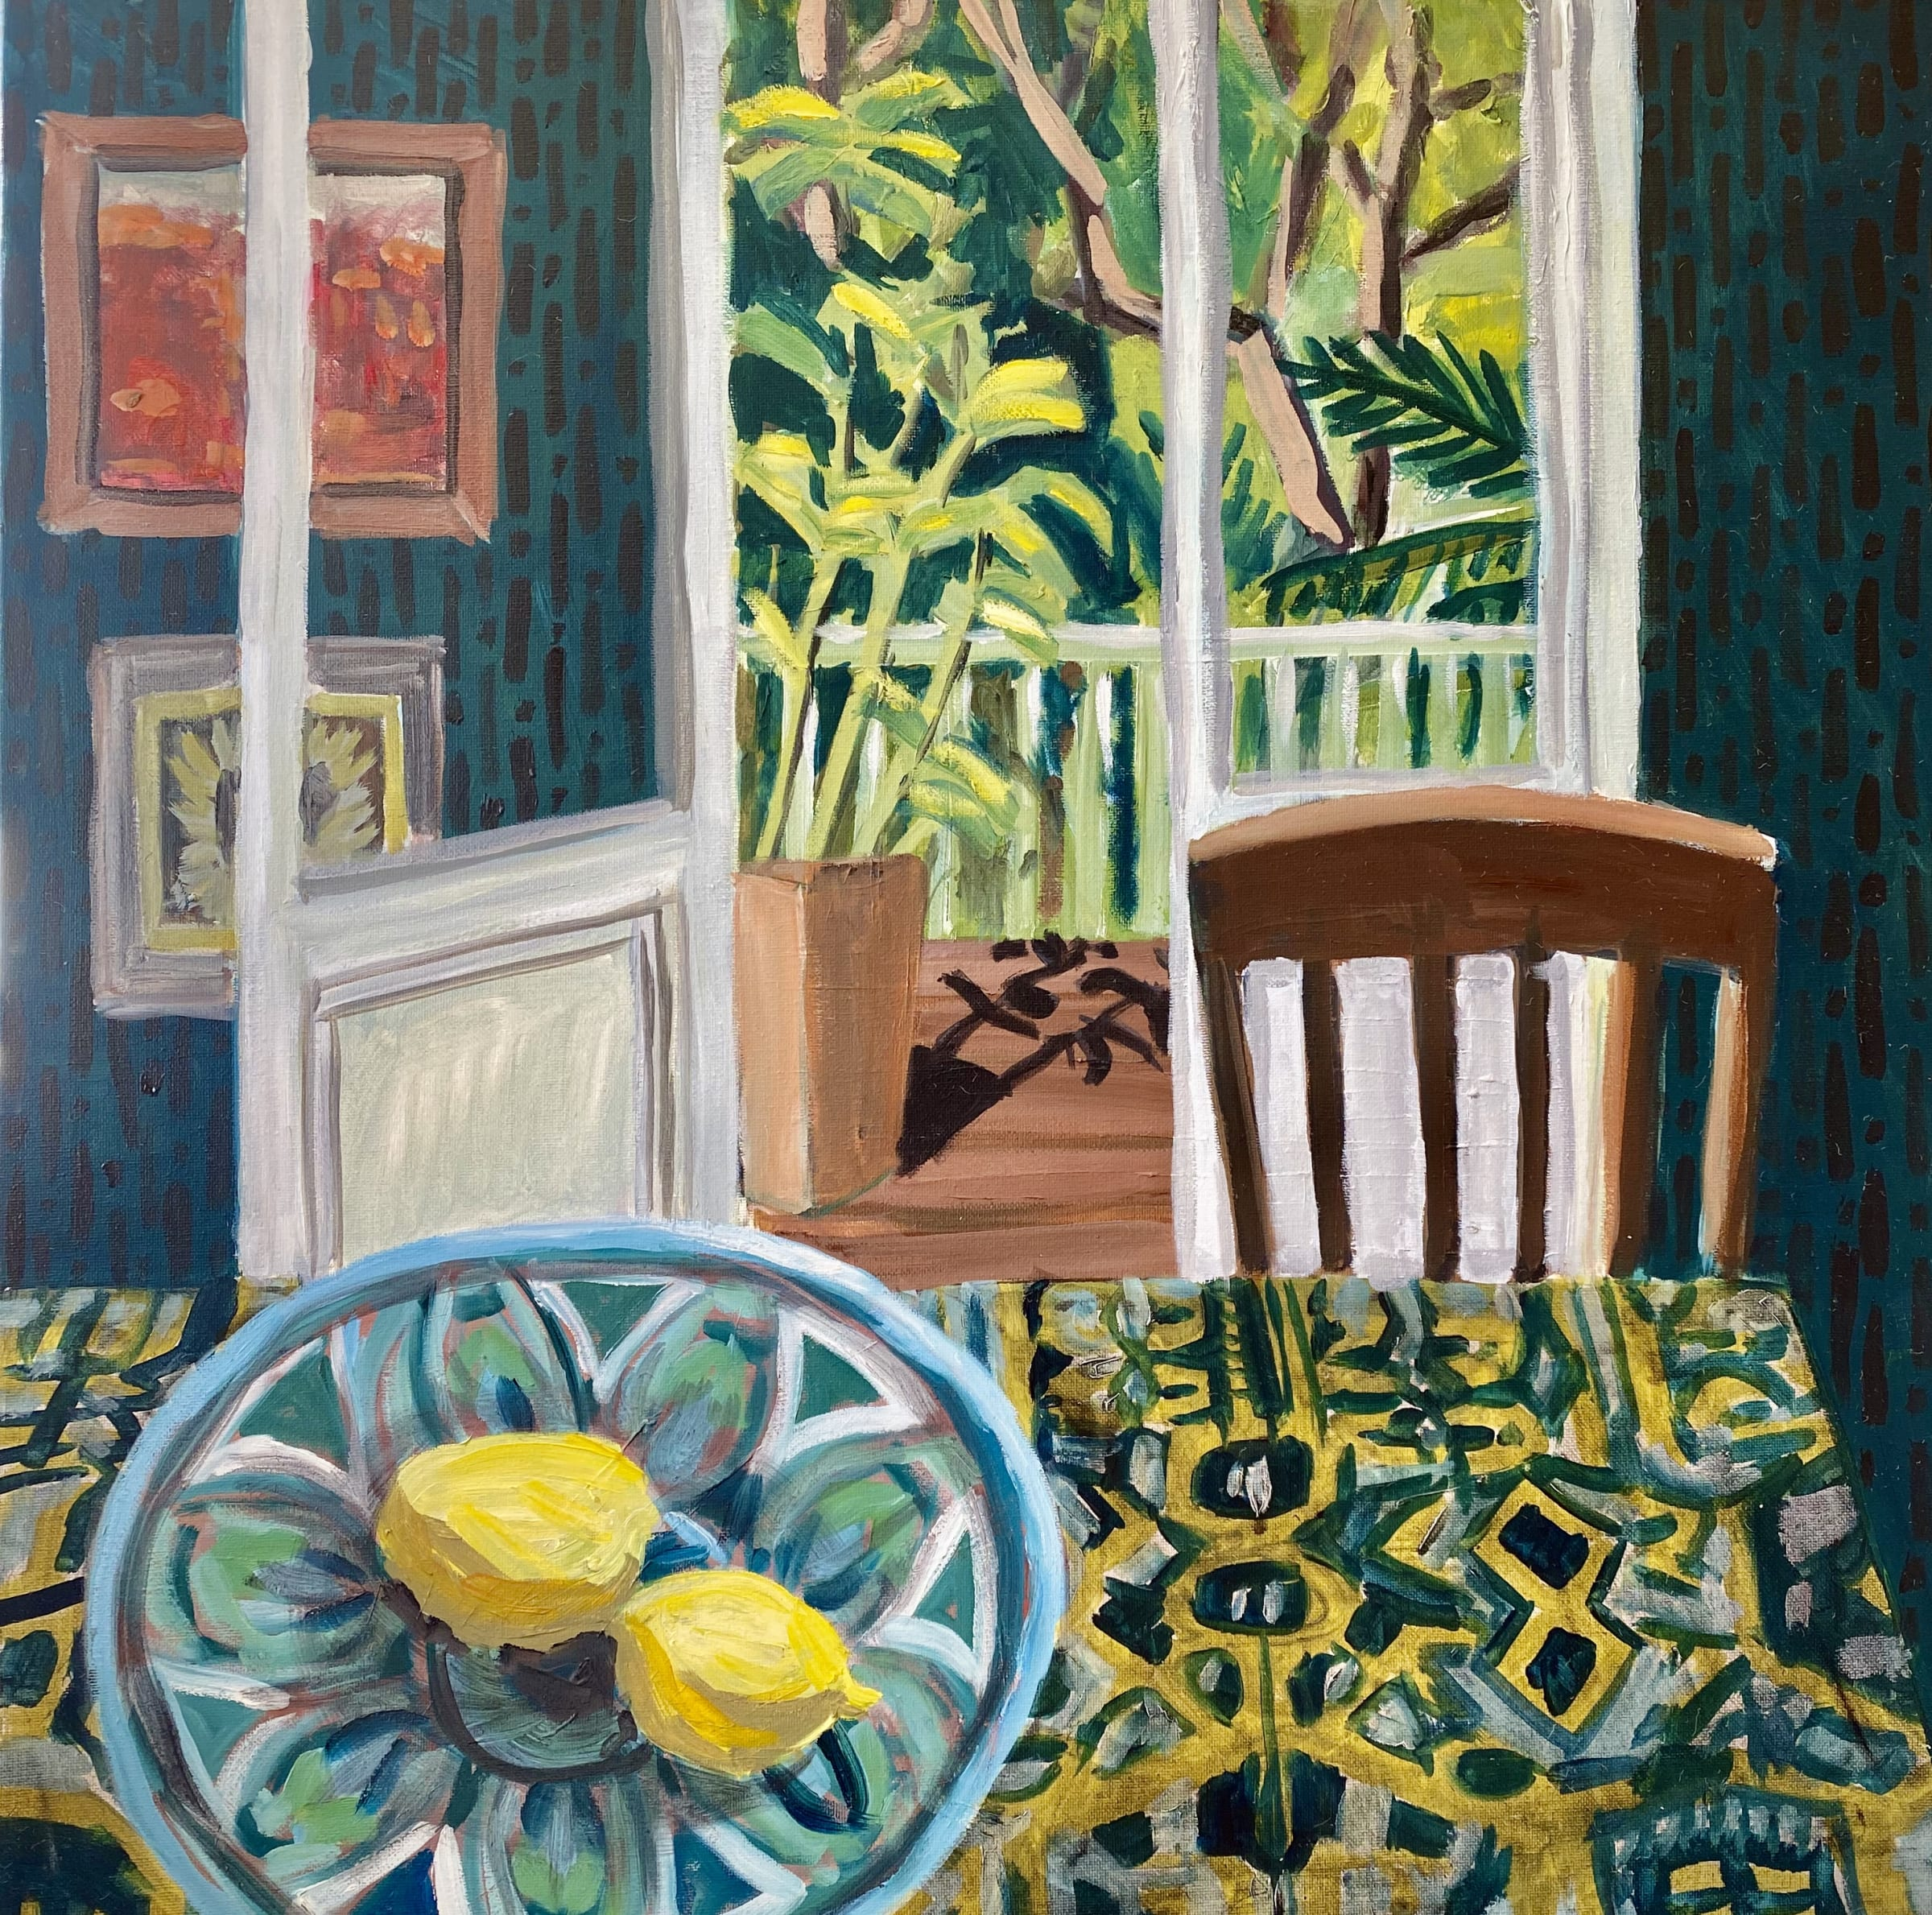 """<span class=""""link fancybox-details-link""""><a href=""""/artists/88-kate-nielsen/works/1253-kate-nielsen-turquoise-bowl-and-chair/"""">View Detail Page</a></span><div class=""""artist""""><strong>Kate Nielsen</strong></div> <div class=""""title""""><em>Turquoise Bowl and Chair</em></div> <div class=""""medium"""">Oil on canvas</div> <div class=""""dimensions"""">16 x 16 inches (framed in light Tasmanian oak)</div>"""